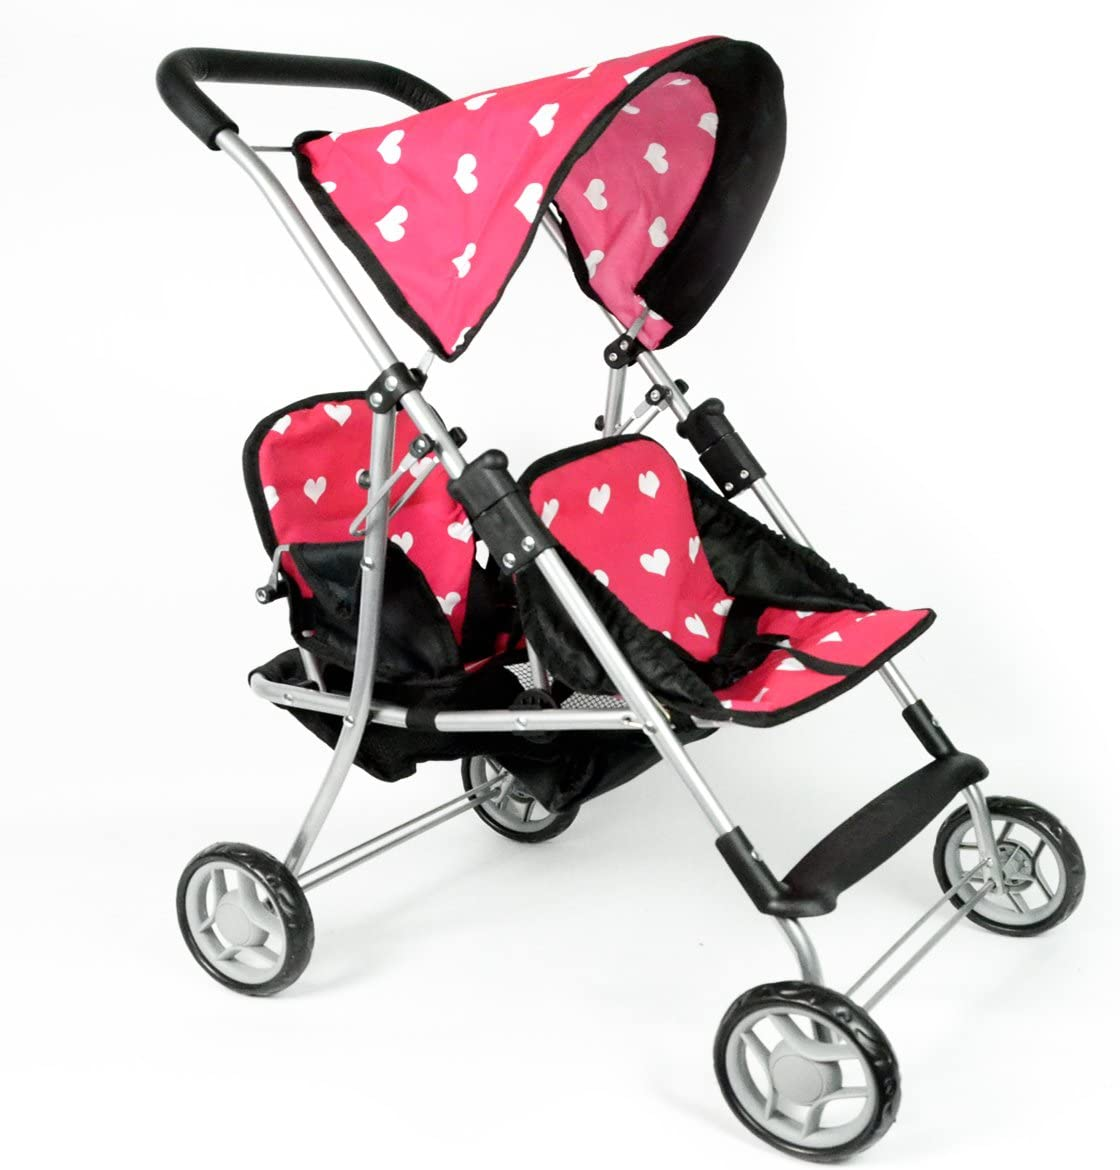 Top 10 Best Baby Doll Stroller (2020 Reviews & Buying Guide) 4